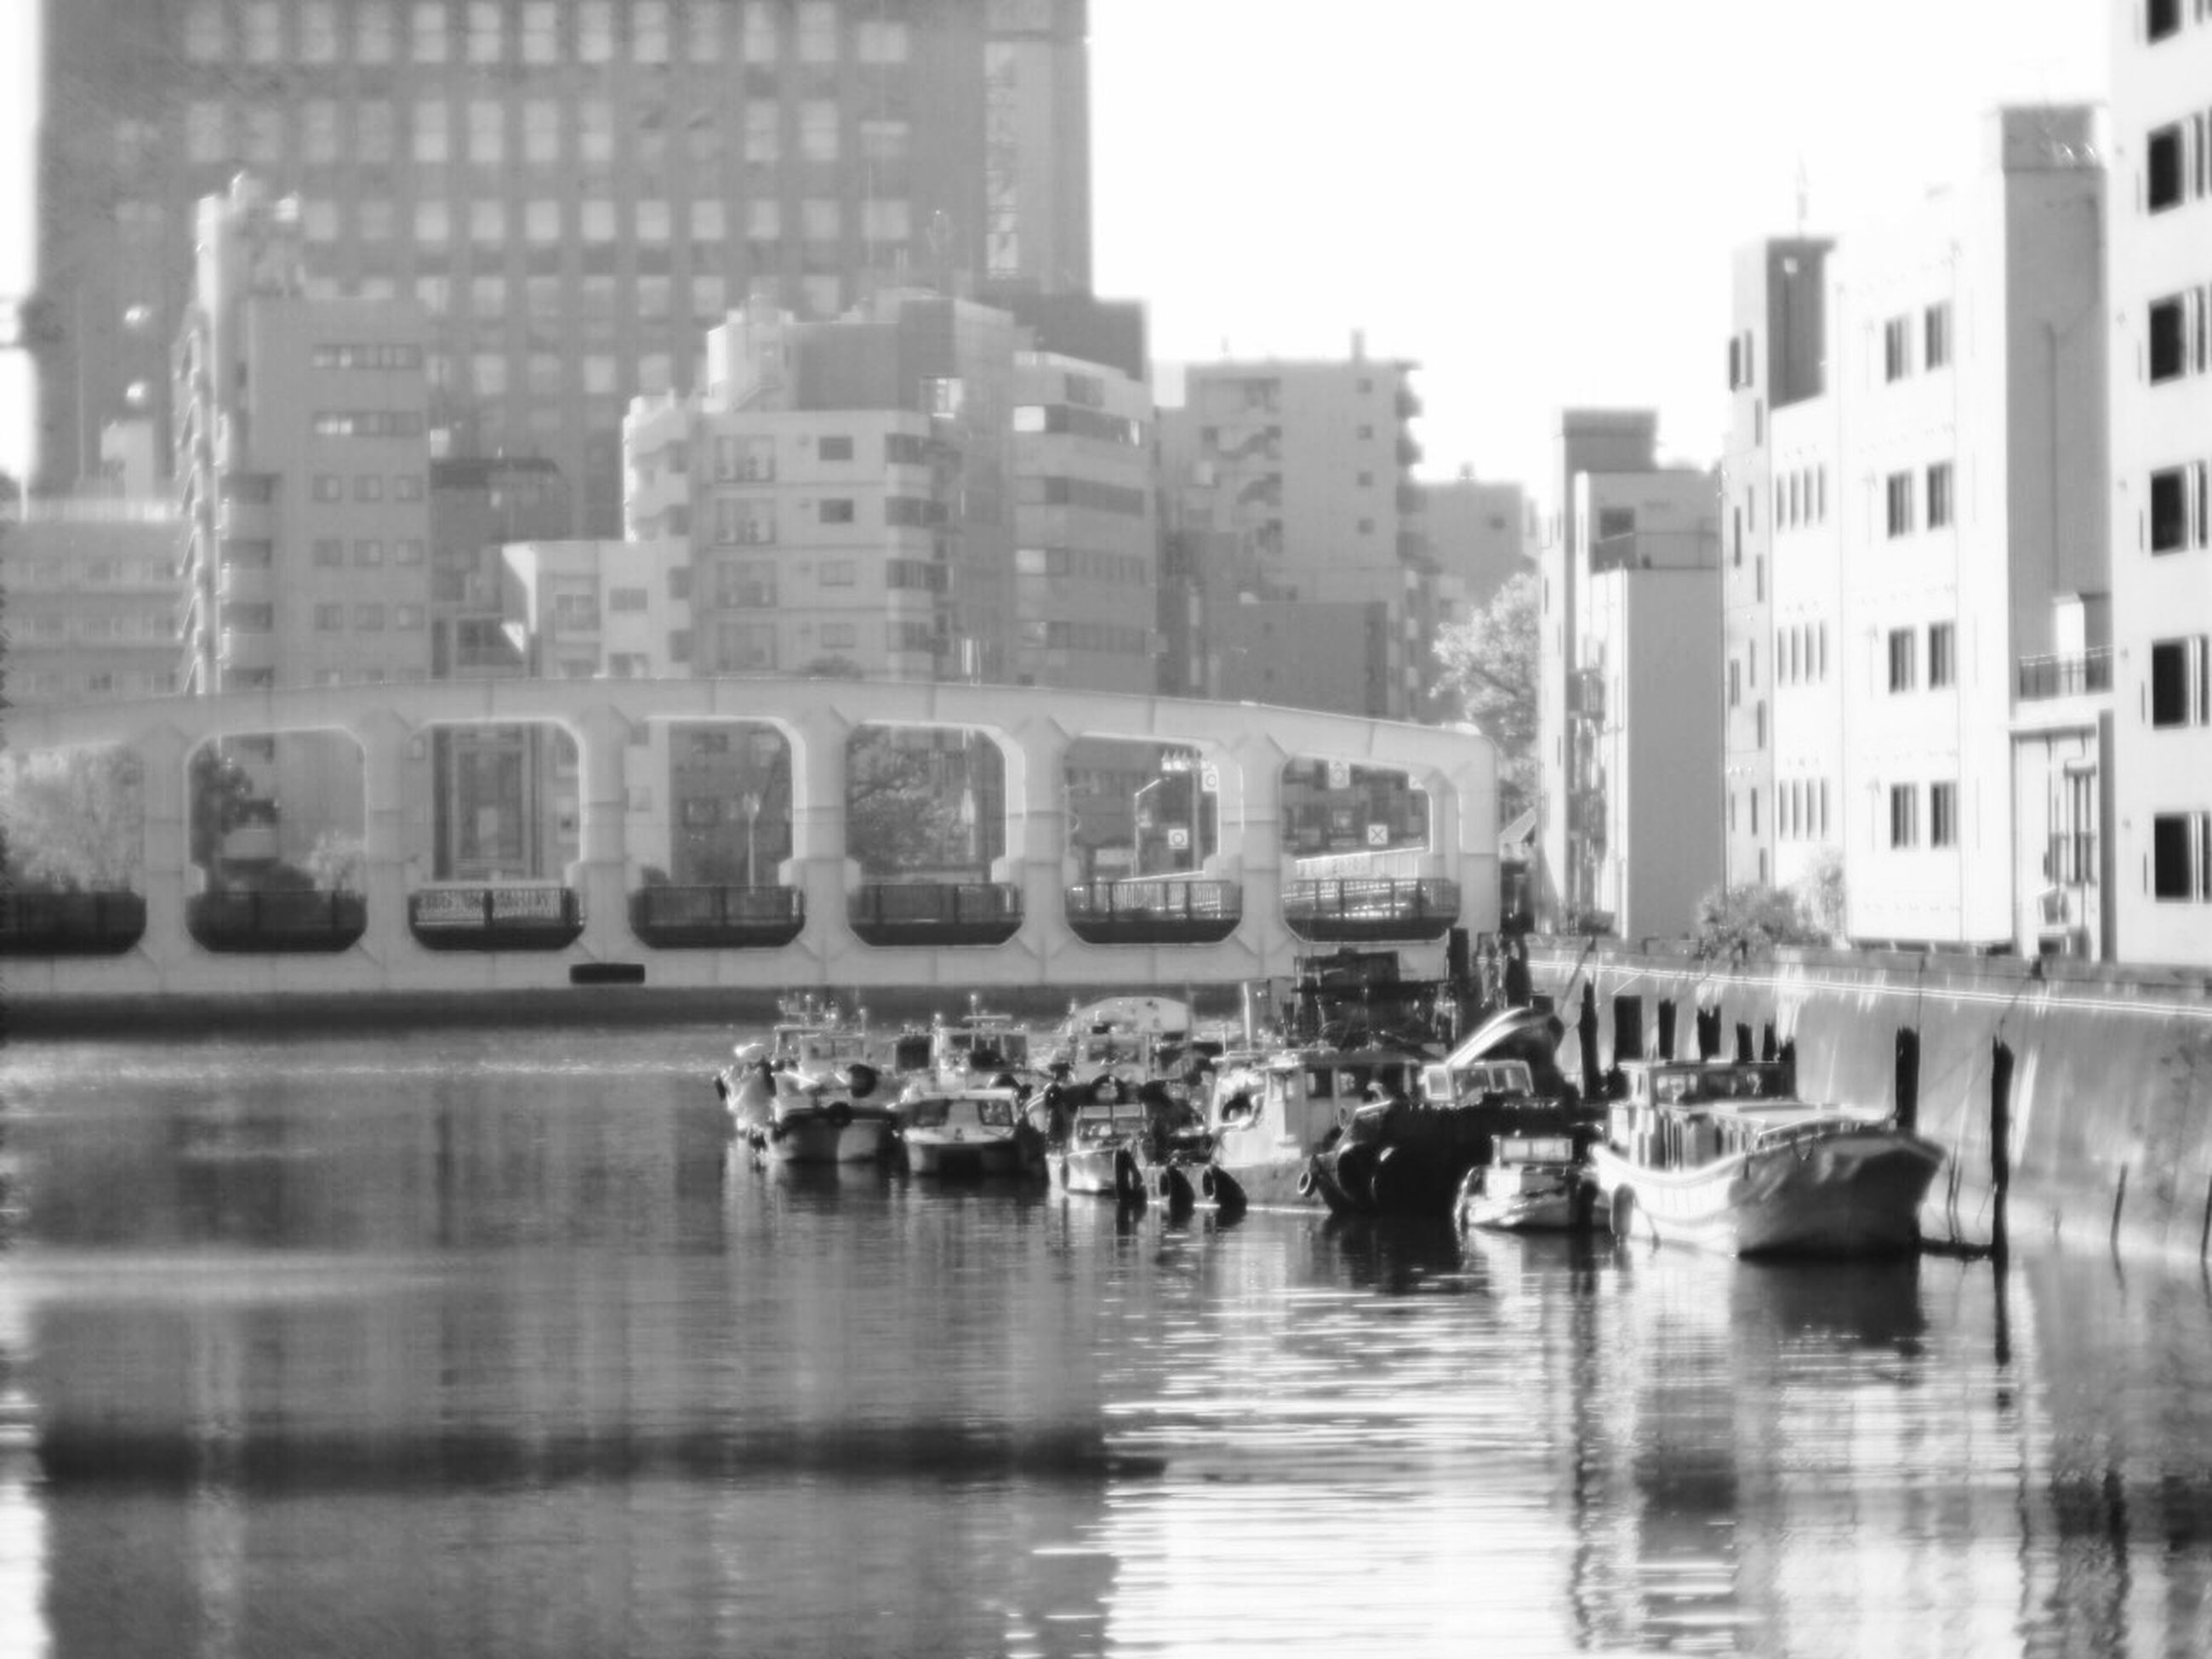 building exterior, transportation, architecture, water, built structure, mode of transport, nautical vessel, reflection, waterfront, boat, city, moored, canal, clear sky, building, city life, travel, sky, incidental people, day